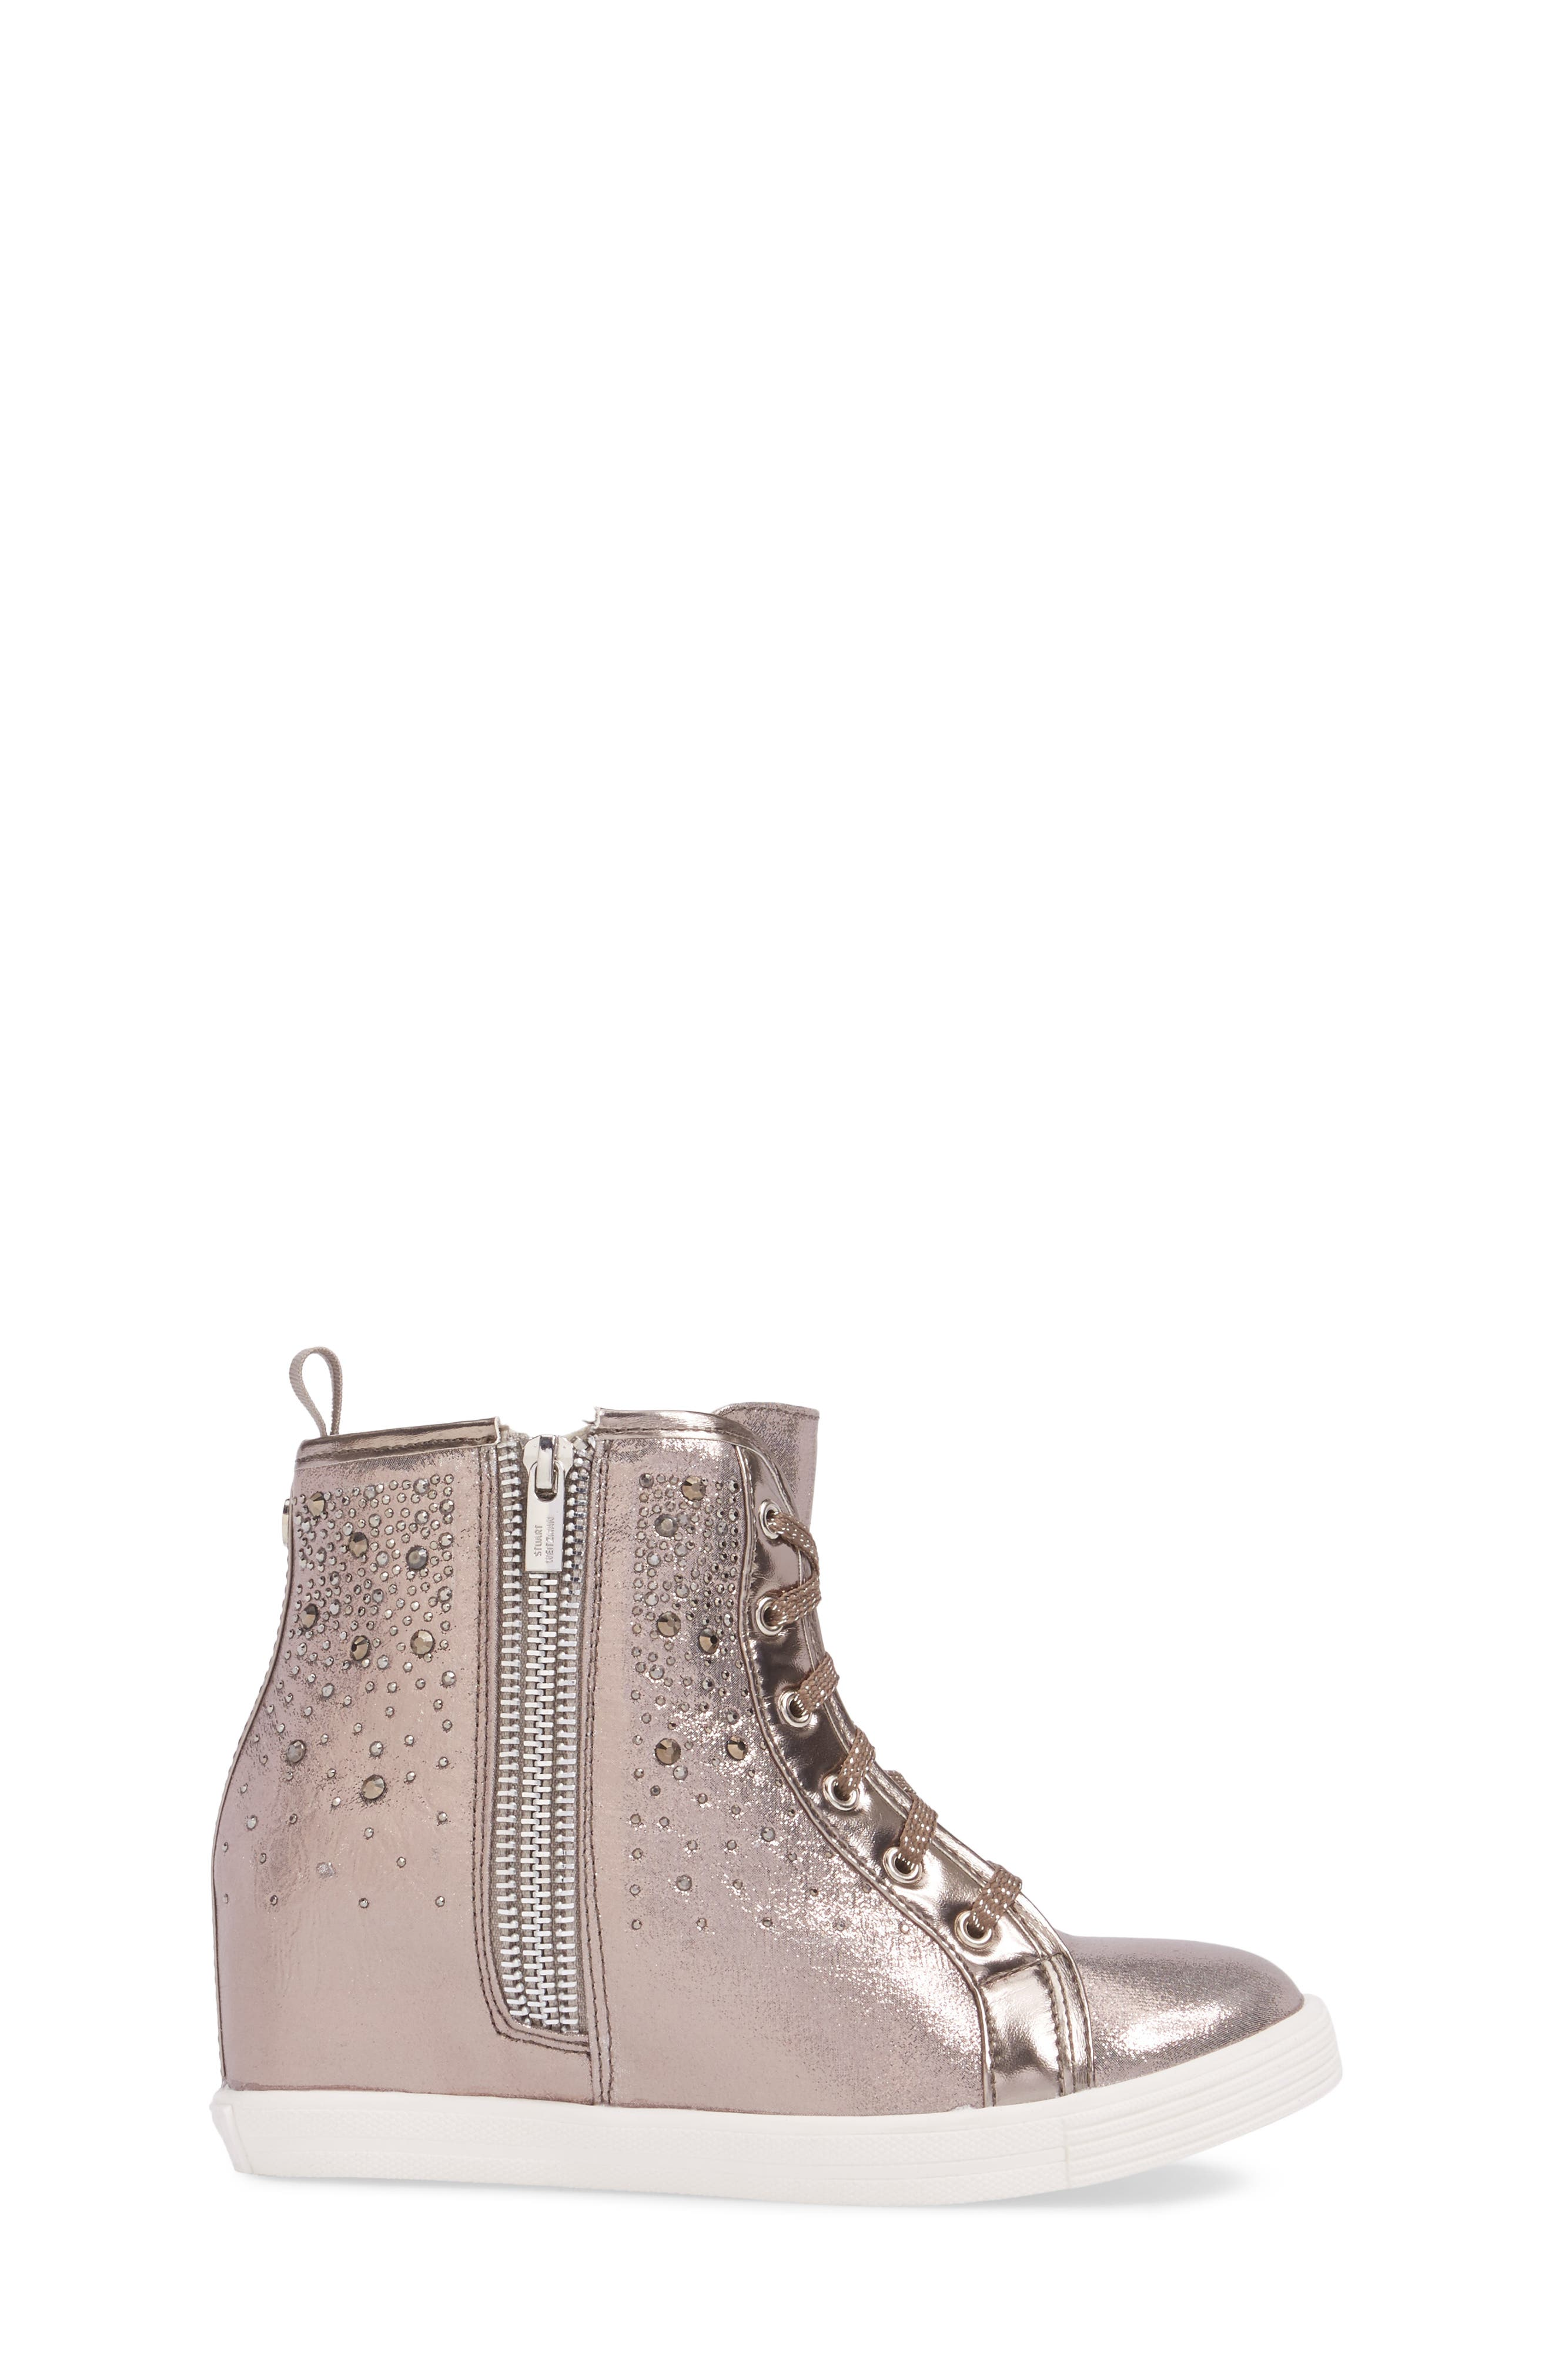 Vance Double Embellished Concealed Wedge High Top,                             Alternate thumbnail 3, color,                             Pewter